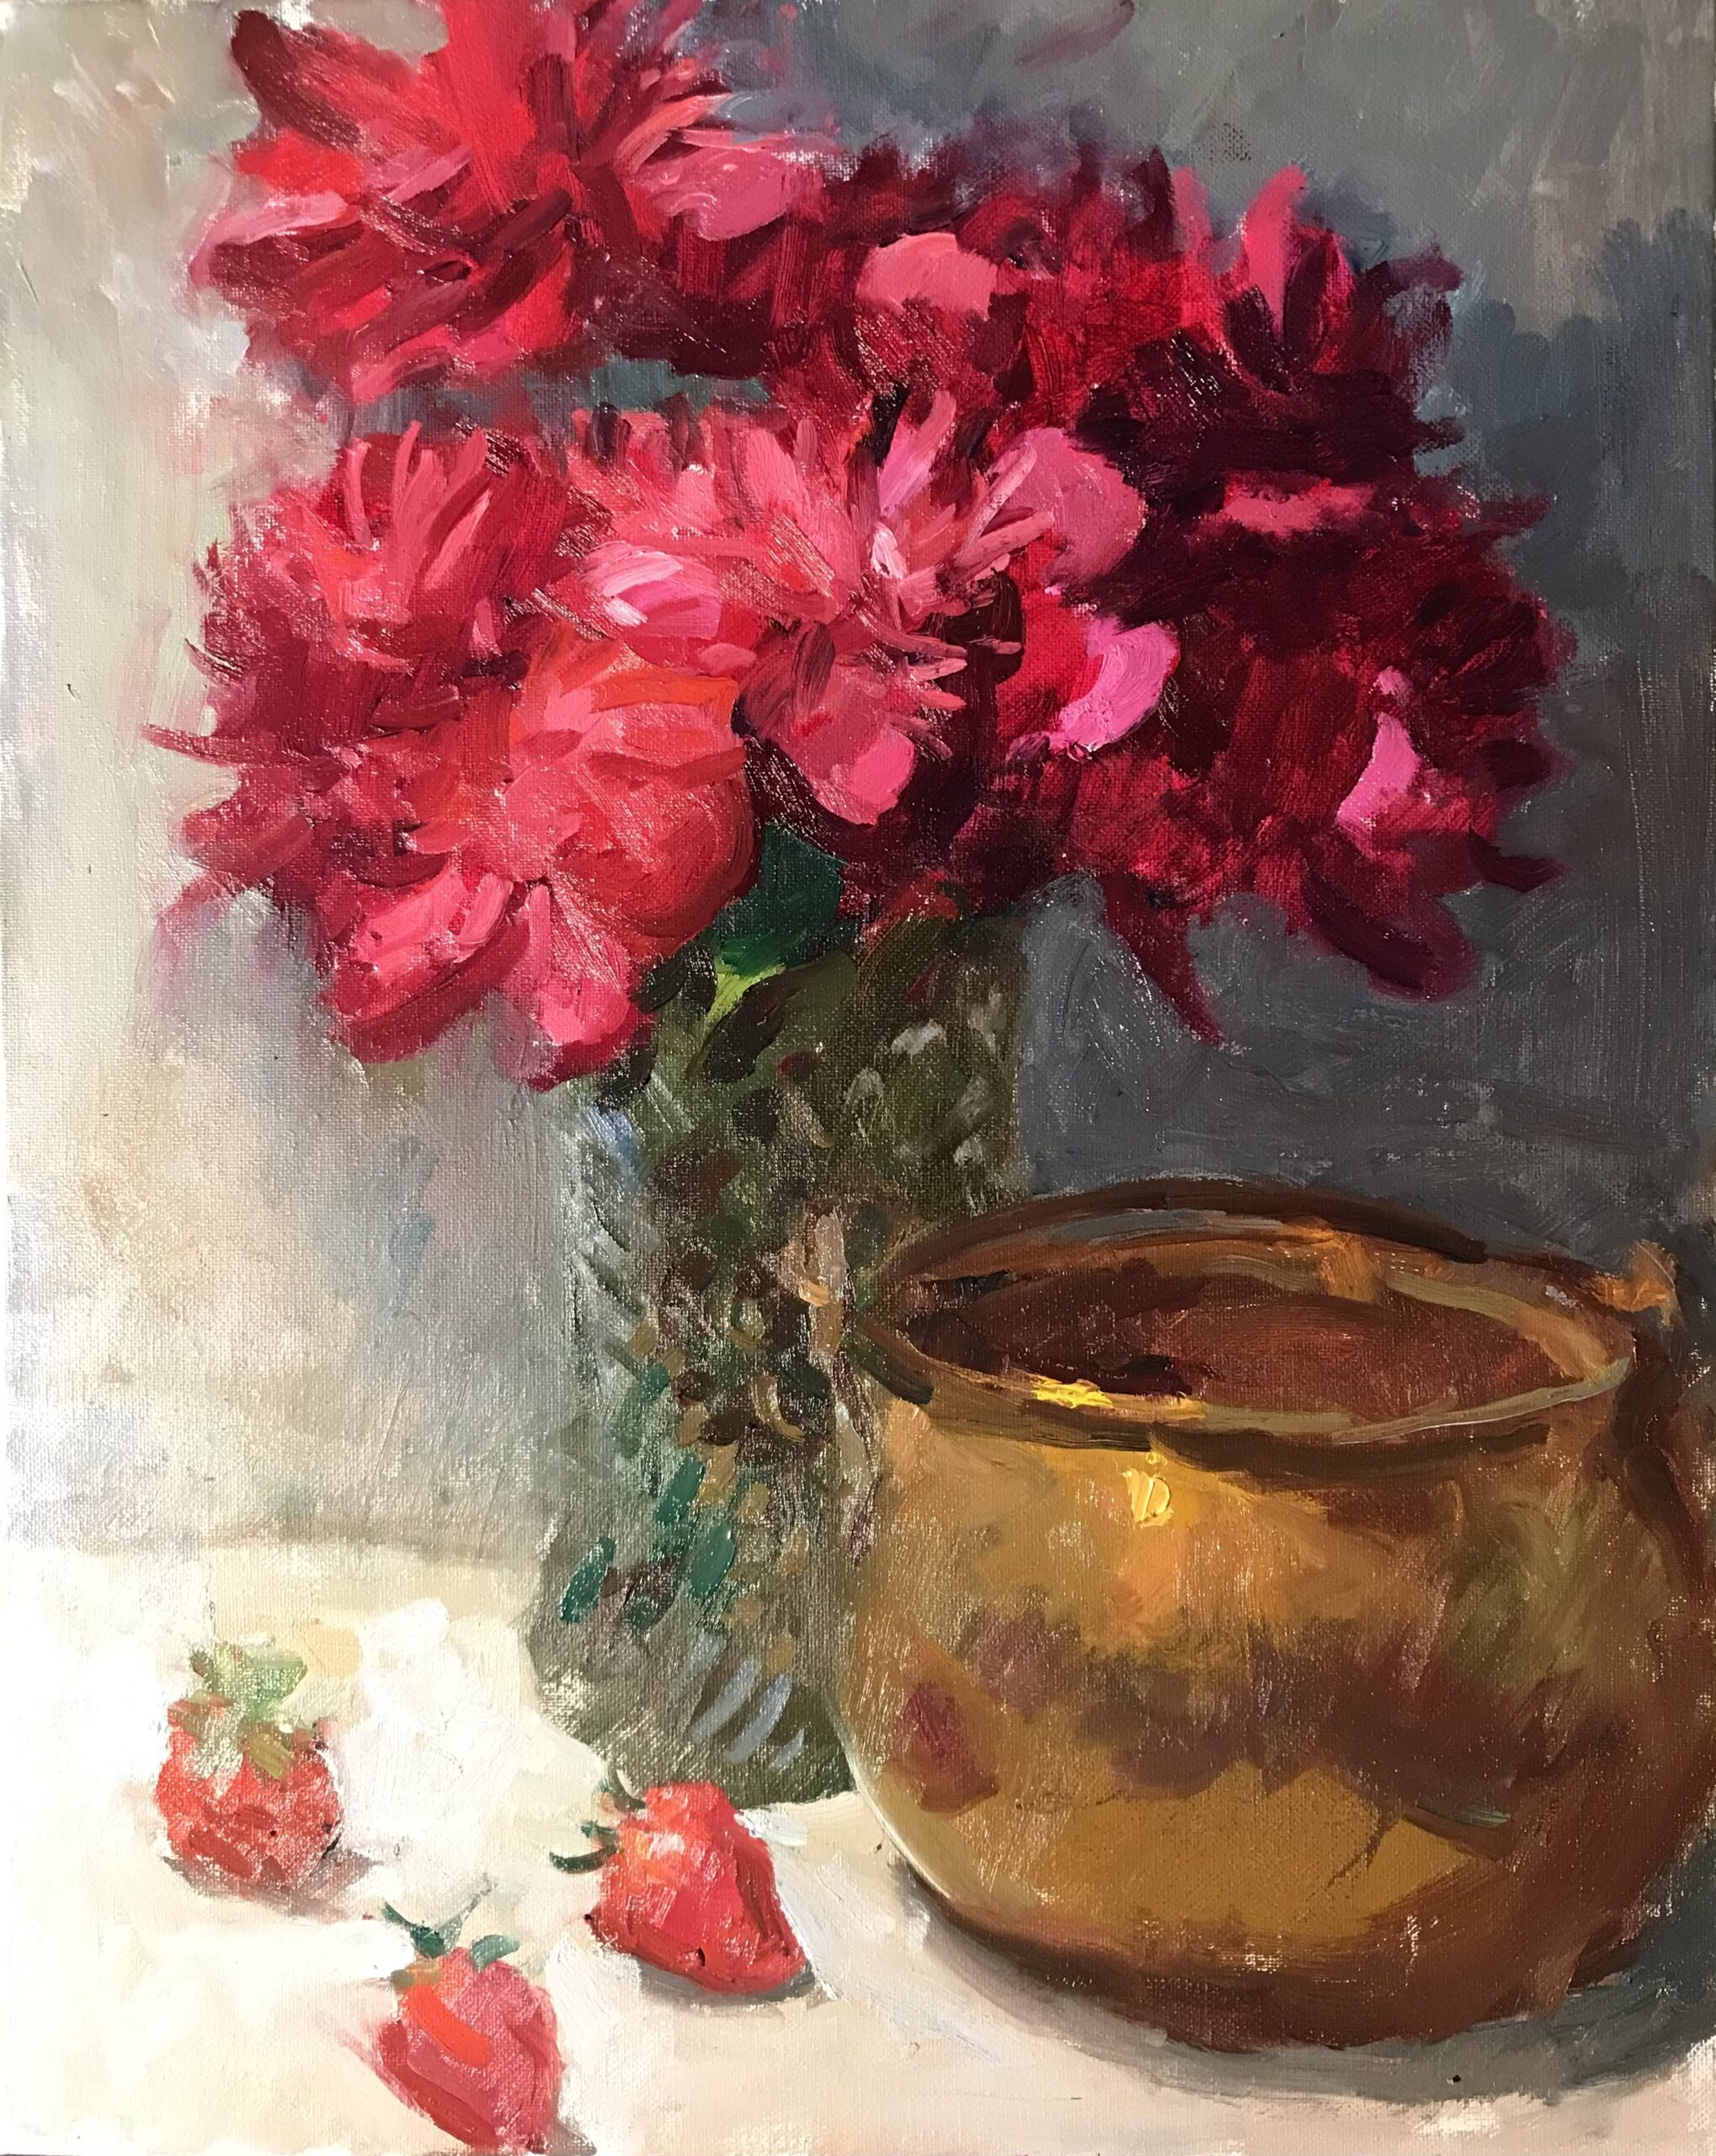 Abby's Peonies, Oil on Canvas, 20 x 16 Inches, by Susan Grisell $550